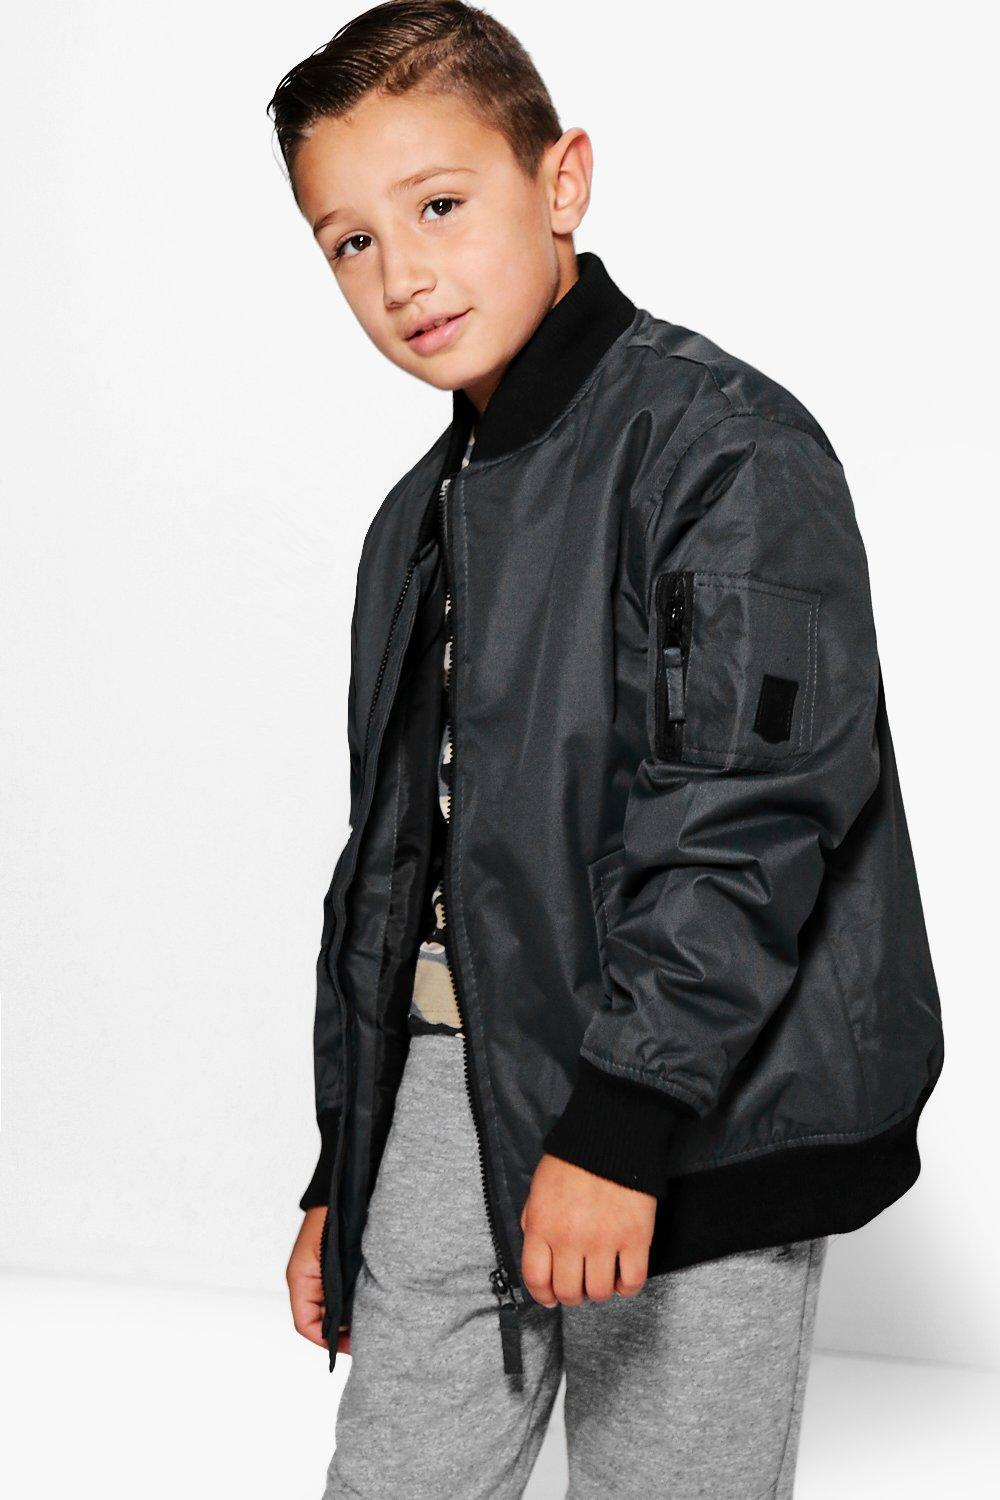 FREE SHIPPING AVAILABLE! Shop worldofweapons.tk and save on Bomber Jackets Boys Coats & Jackets.